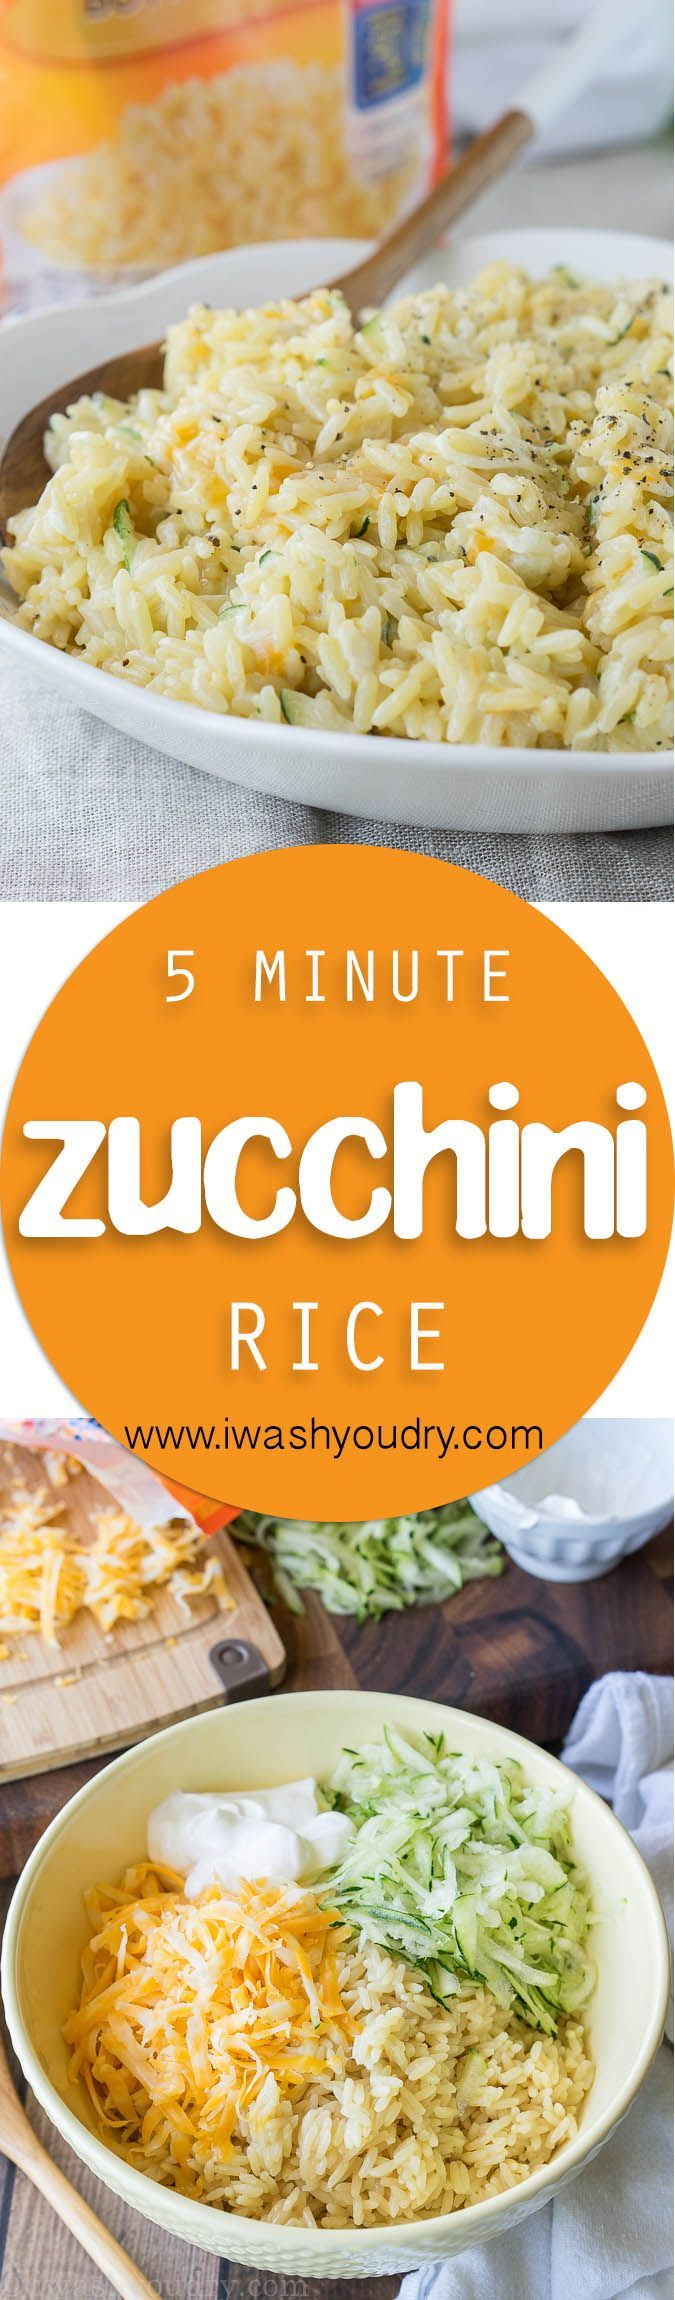 I love making this 5 minute Cheesy Zucchini Rice recipe for a quick and easy side dish! Even my kids get in there and help too! #ad